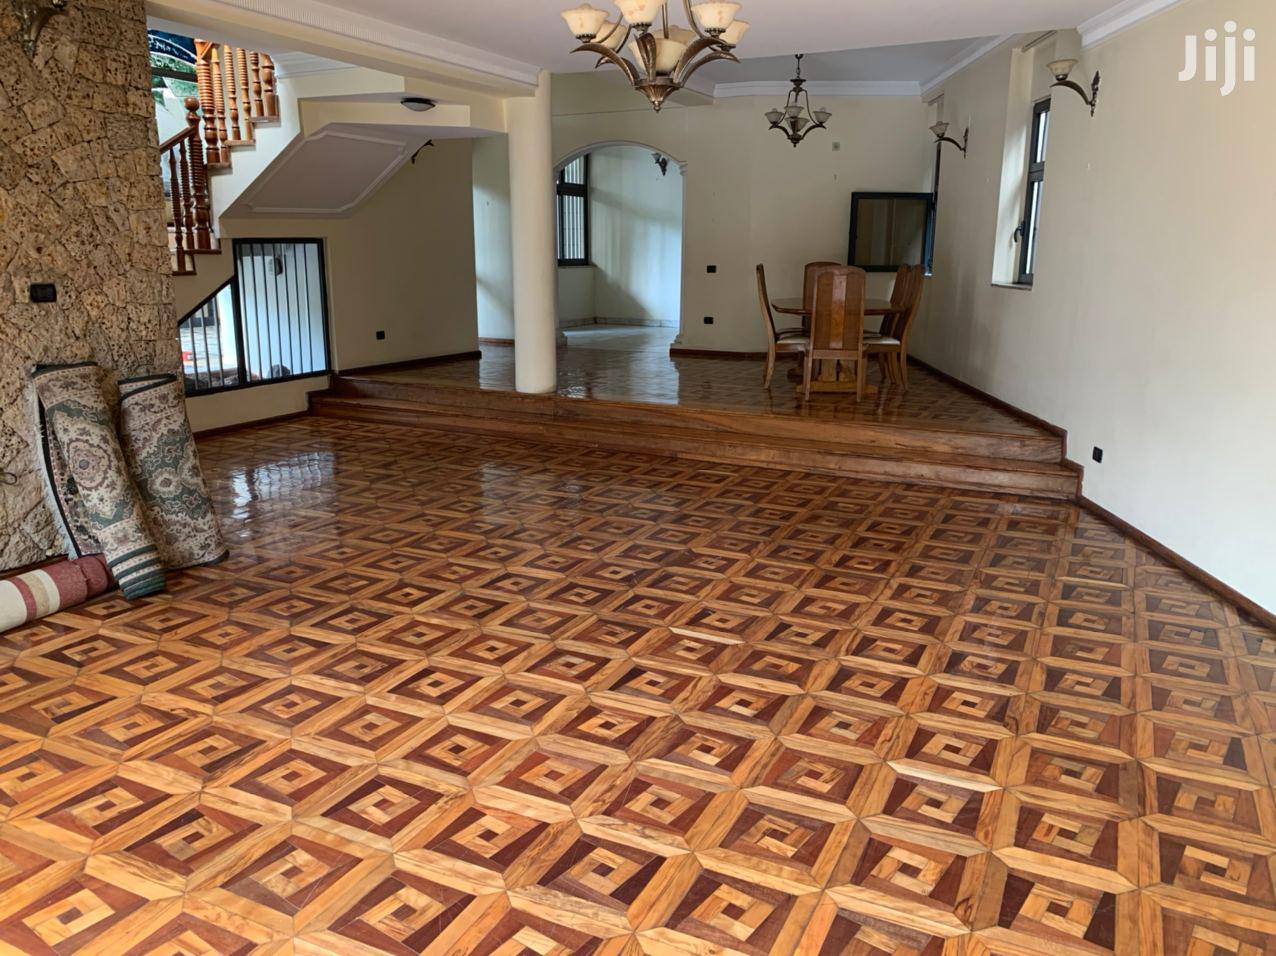 Furnished 6bdrm House in Bole for Rent   Houses & Apartments For Rent for sale in Bole, Addis Ababa, Ethiopia